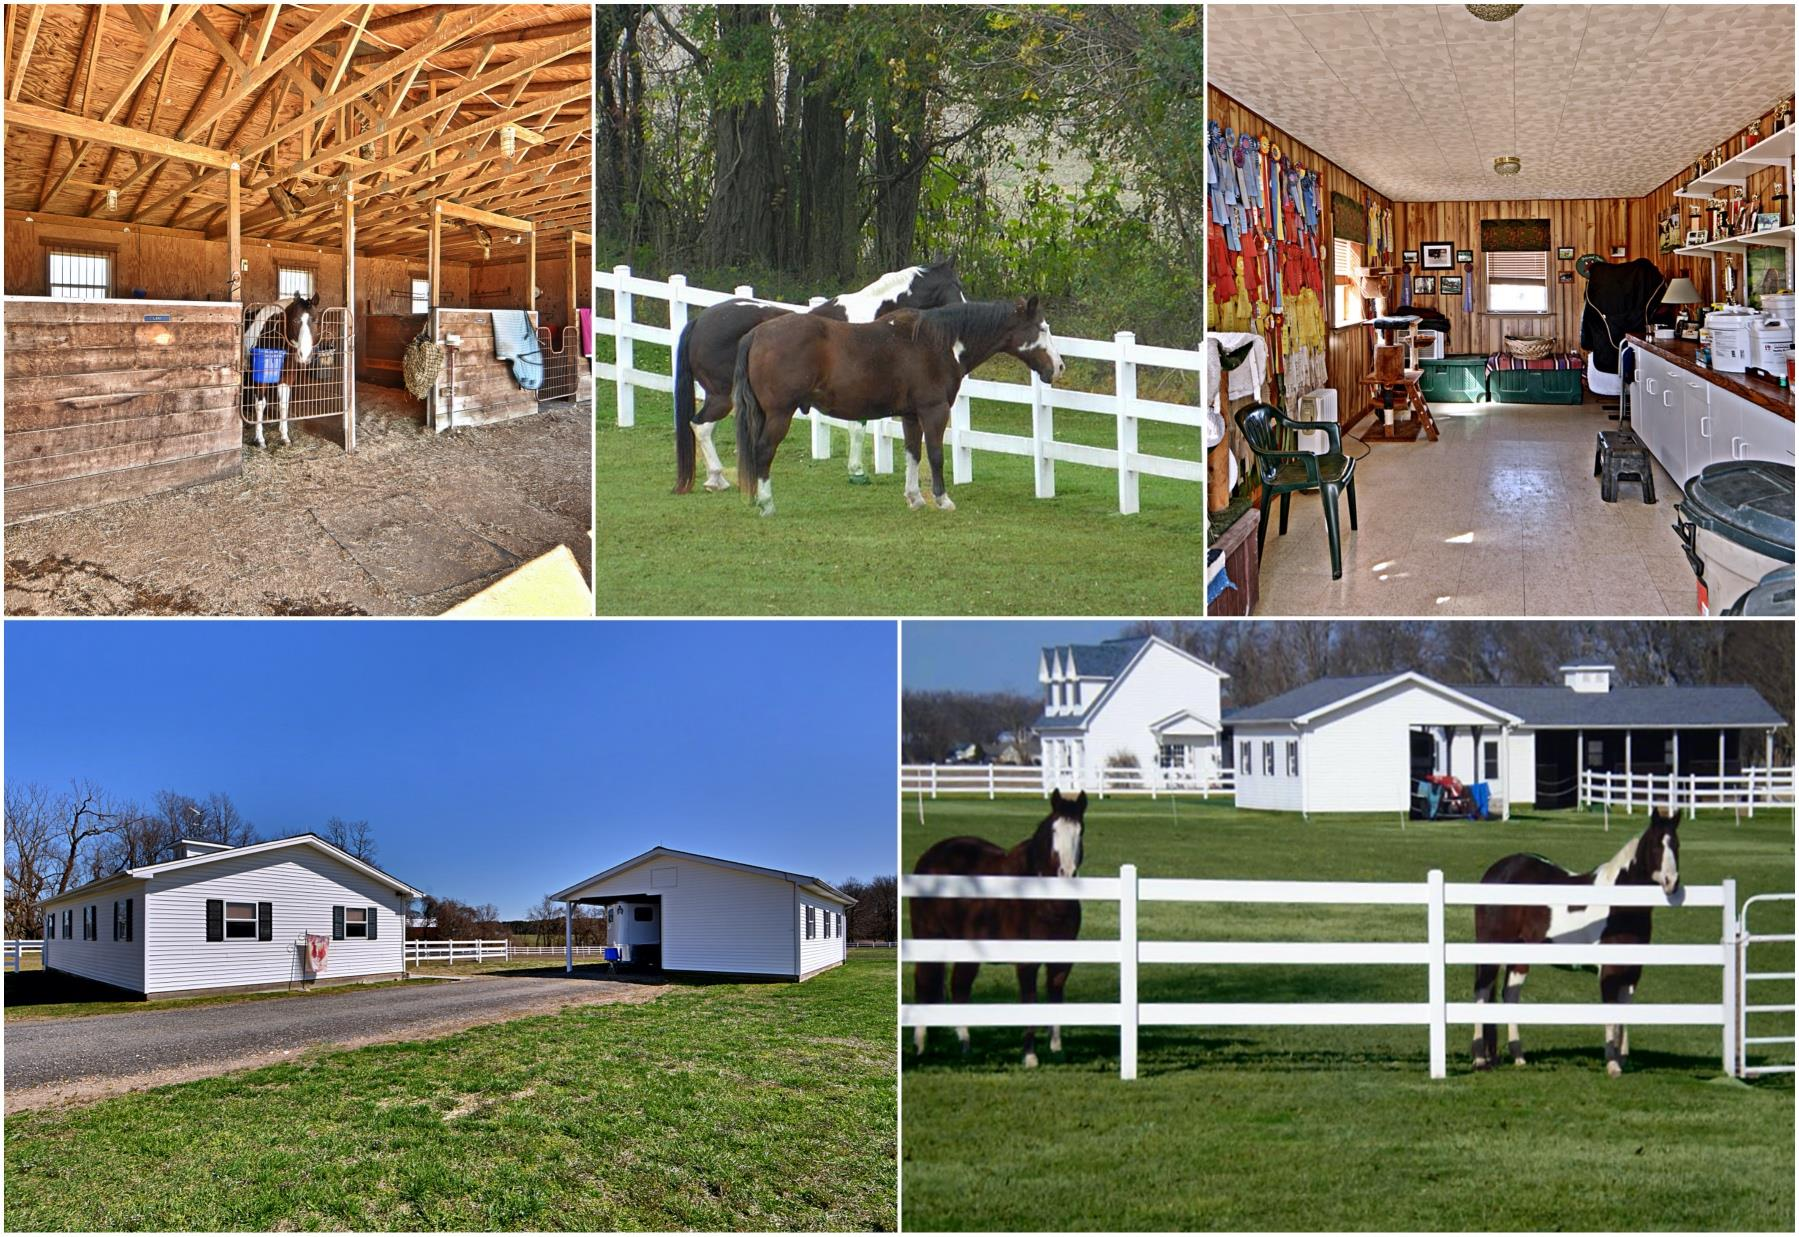 Beautiful Horse Facilities at Foxwood Farm in Bushwood MD - Stable, Pasture and More at 21581 Montfort Rd, Bushwood MD